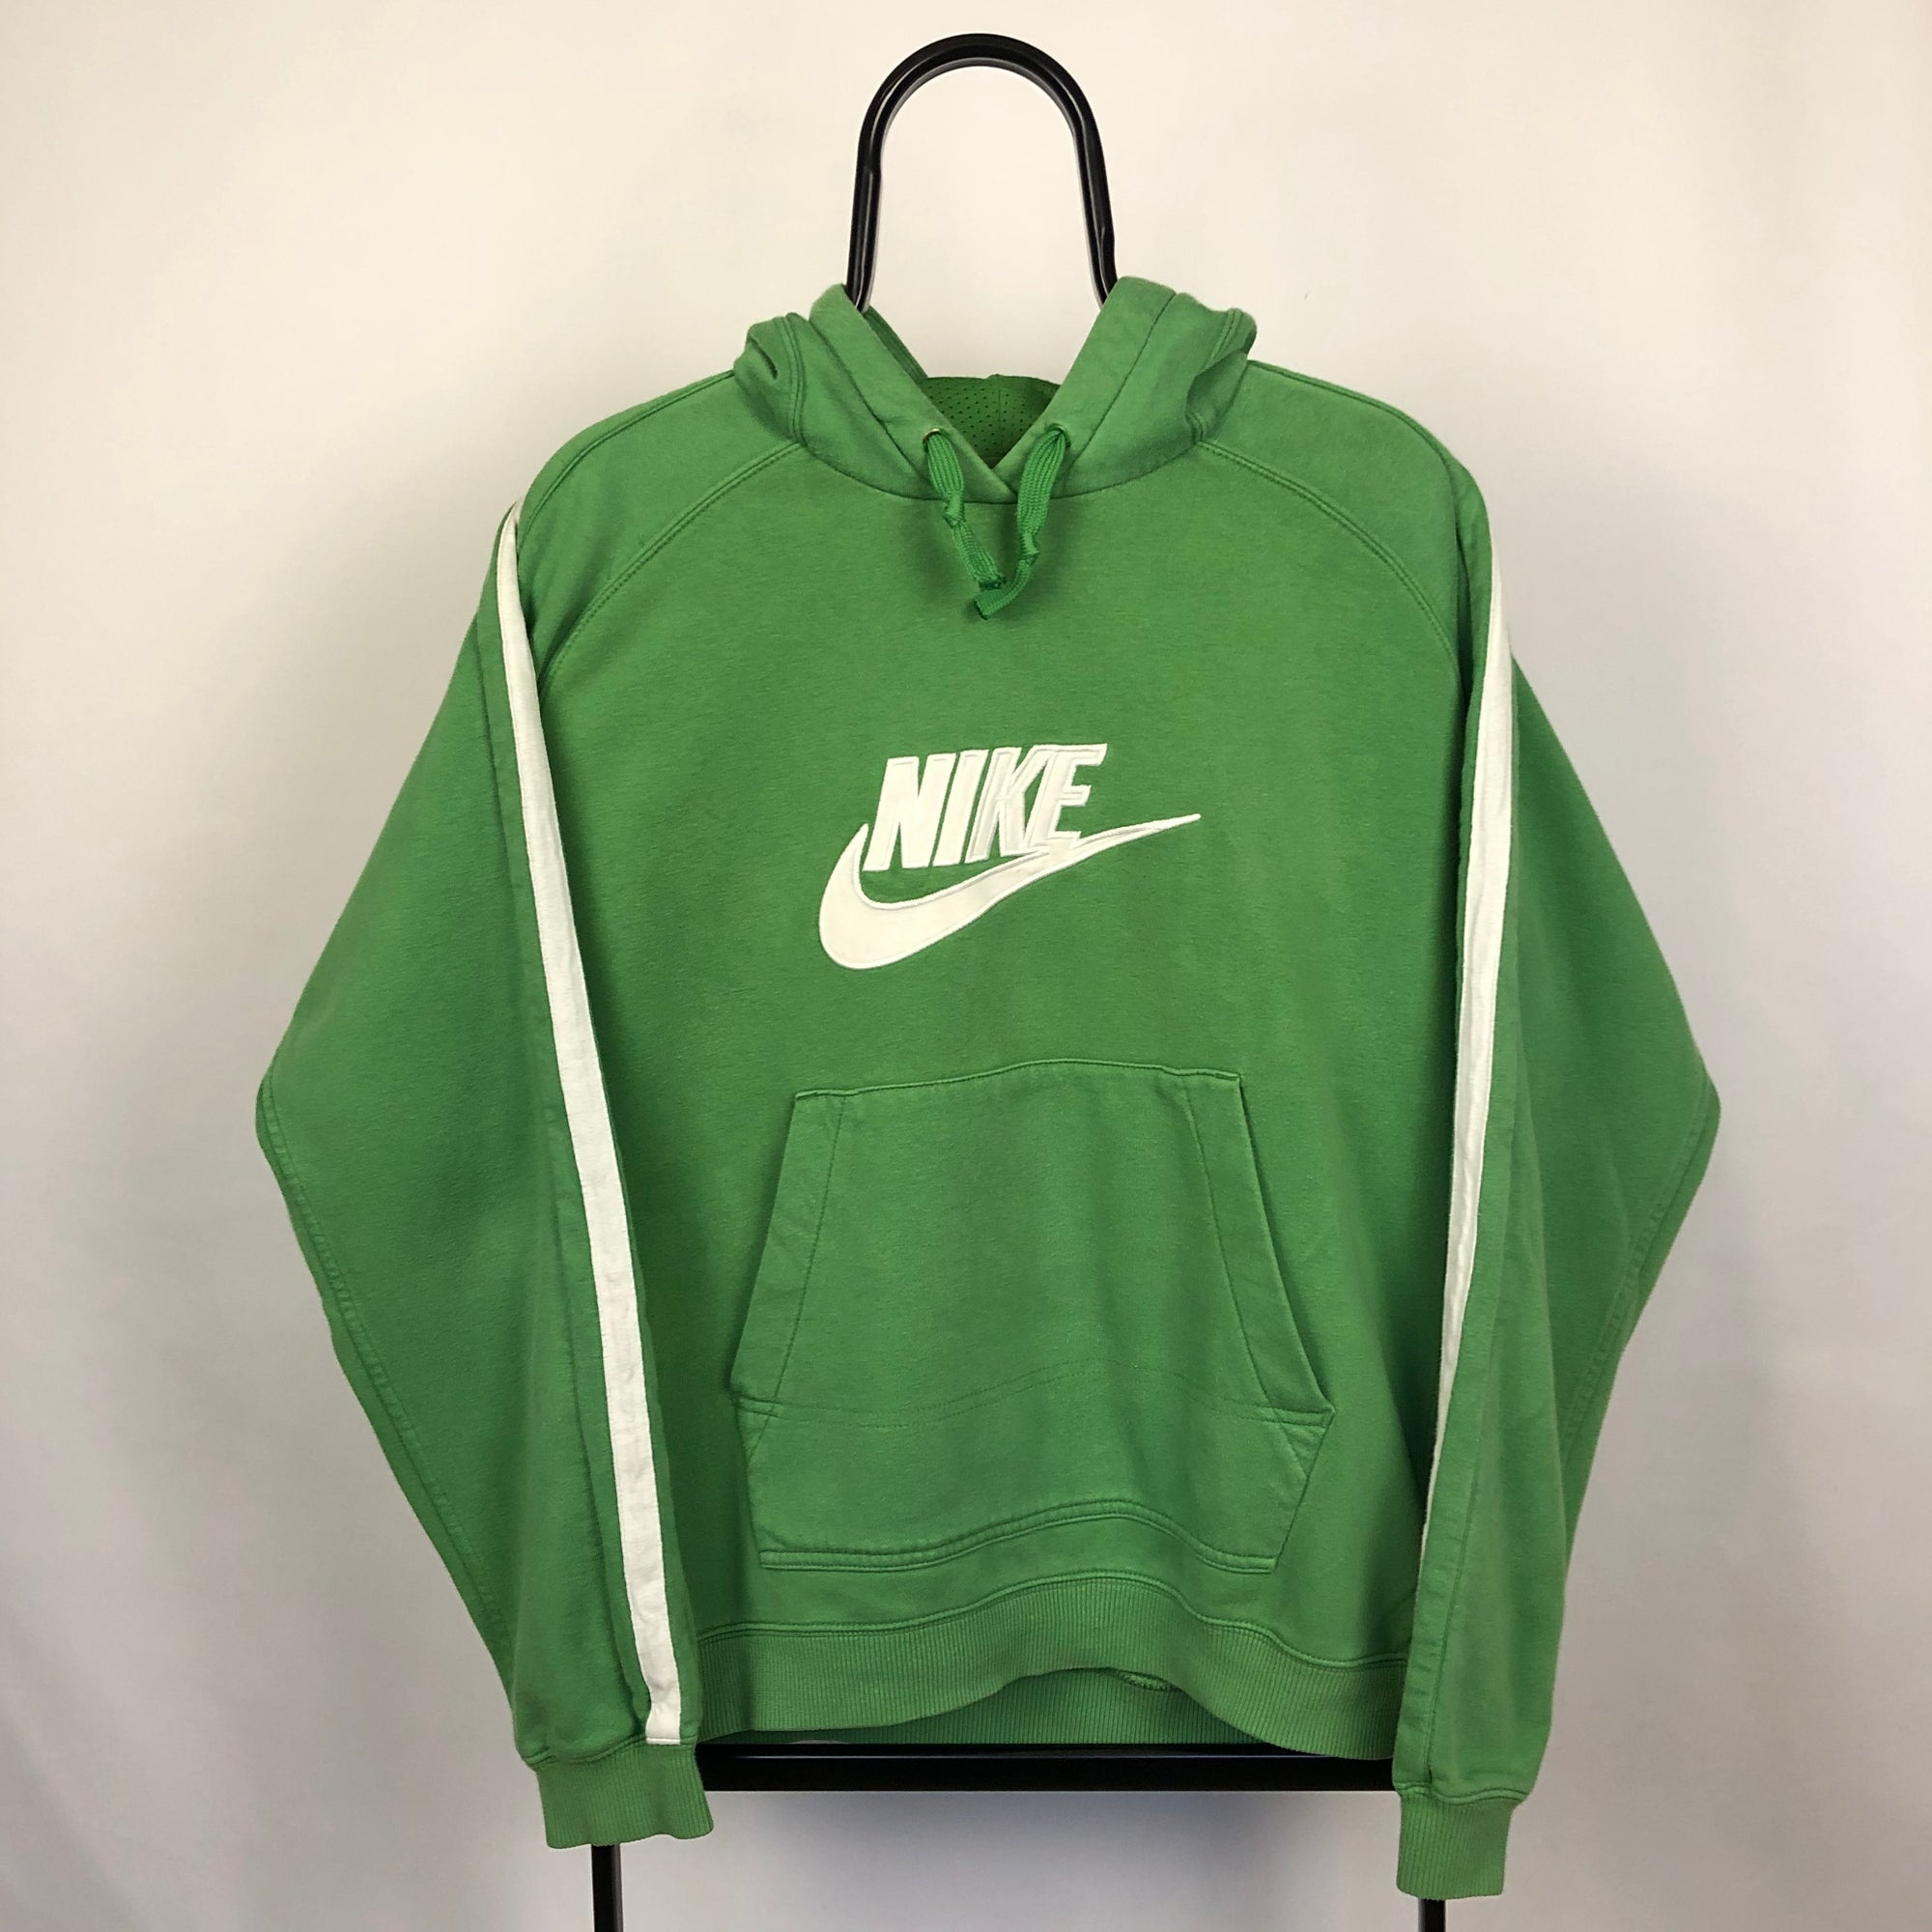 Vintage Nike Hoodie in Green - Men's Medium/Women's Large